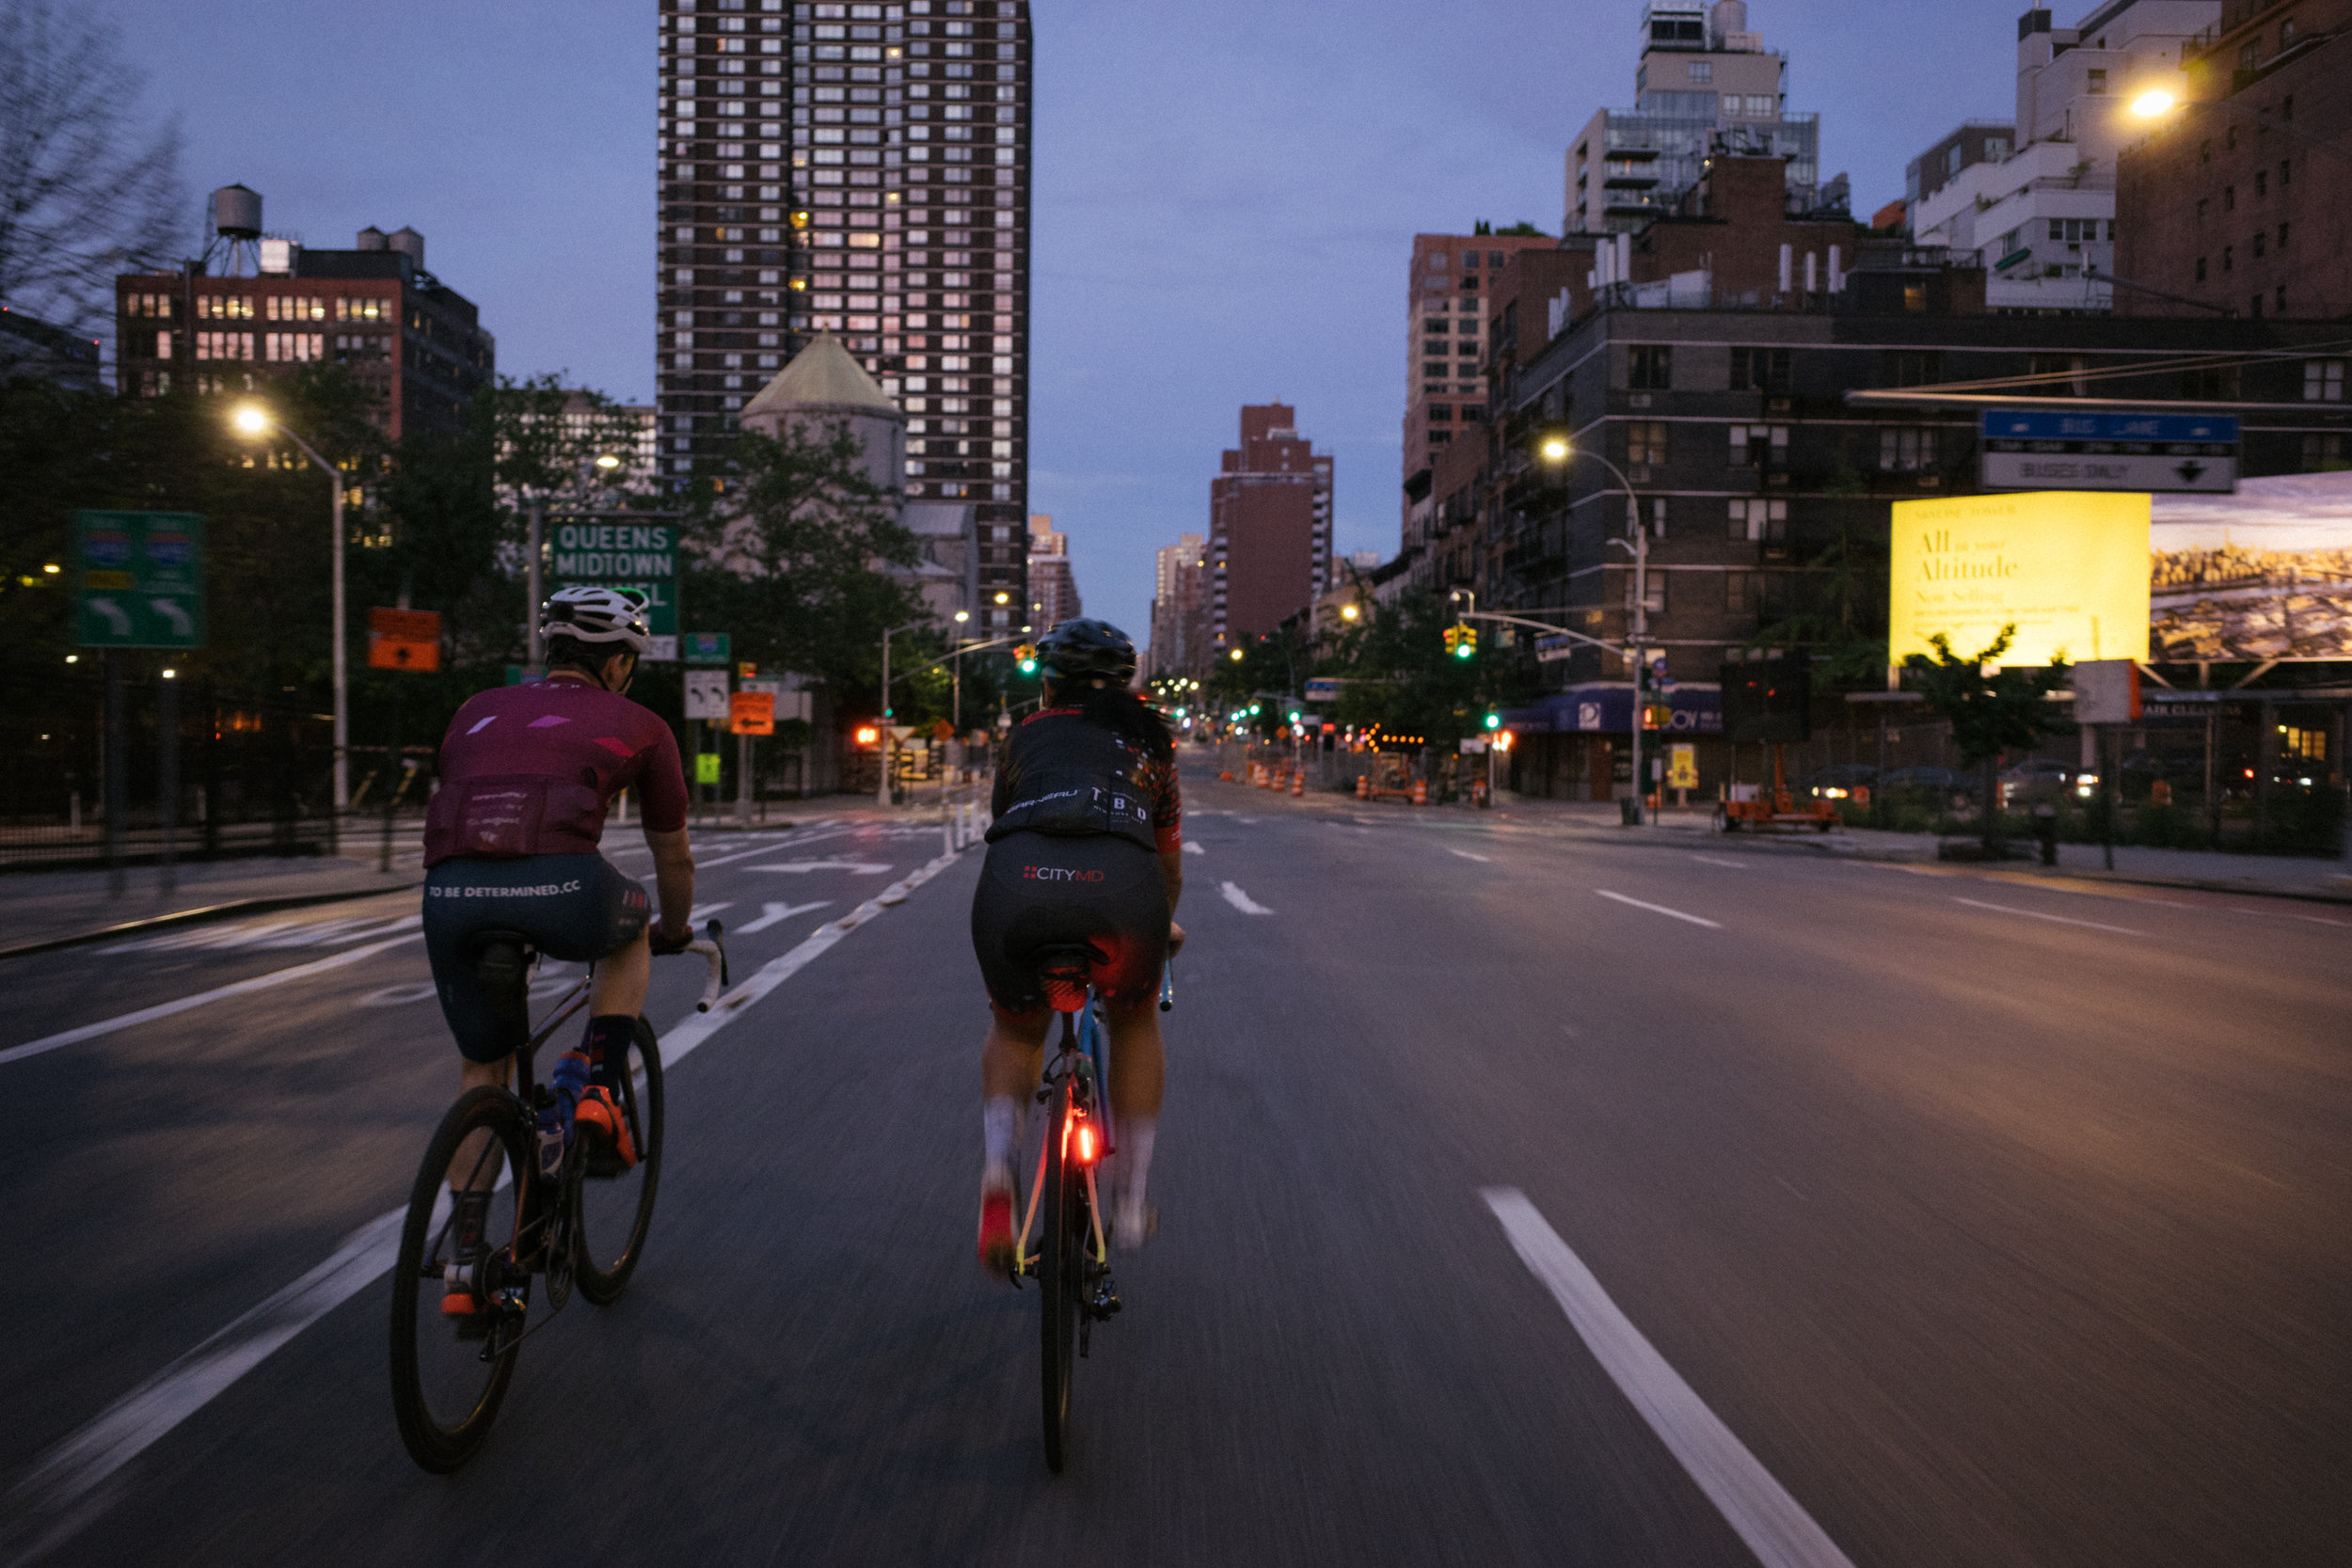 The early morning uptown crew, crushing down 2nd Ave on the way to Brooklyn.